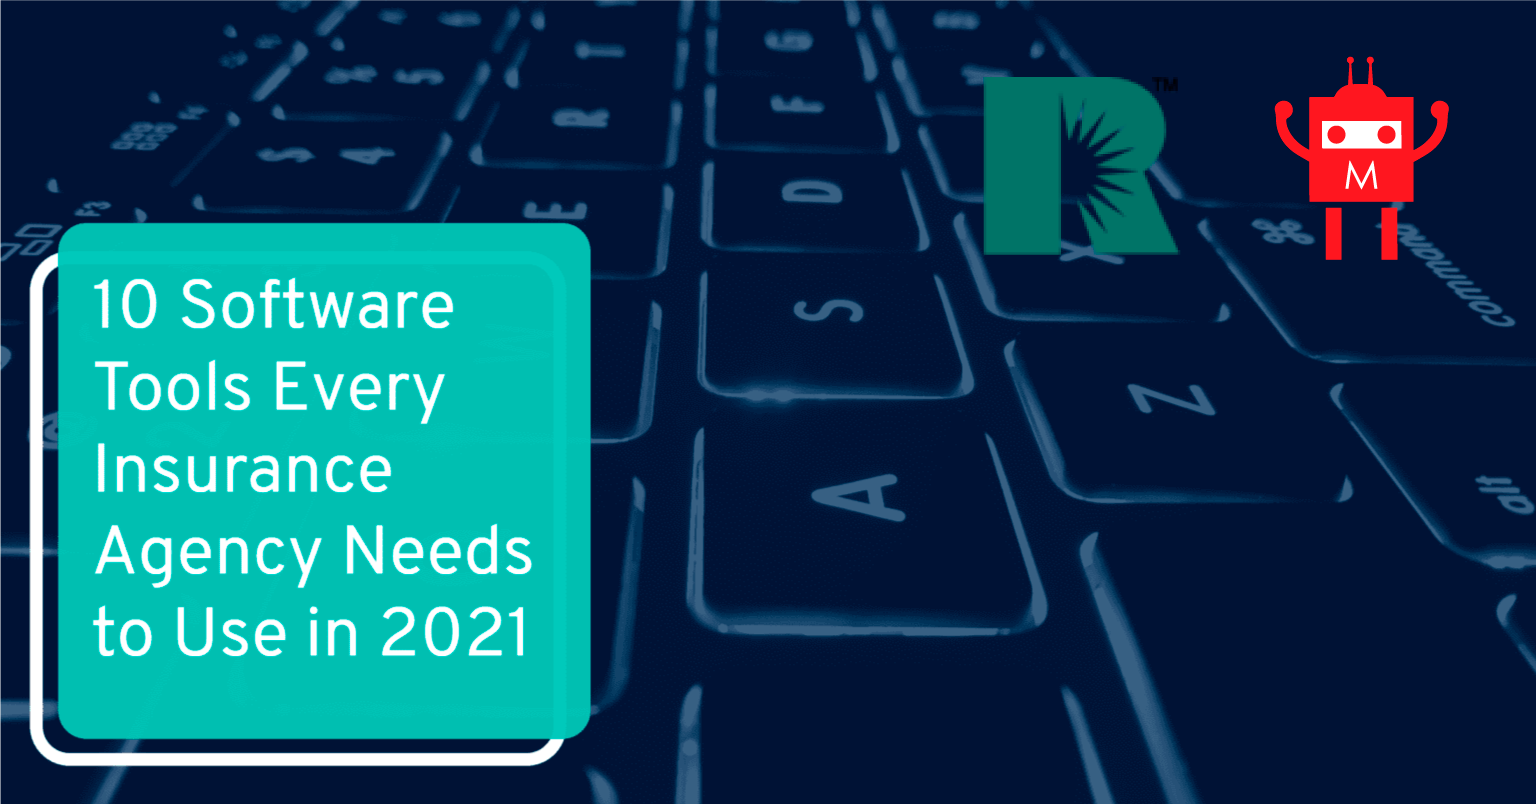 Relativity6 featured in Renaissance Alliance's Top 10 Software Tools Insurance Agencies should use in 2021